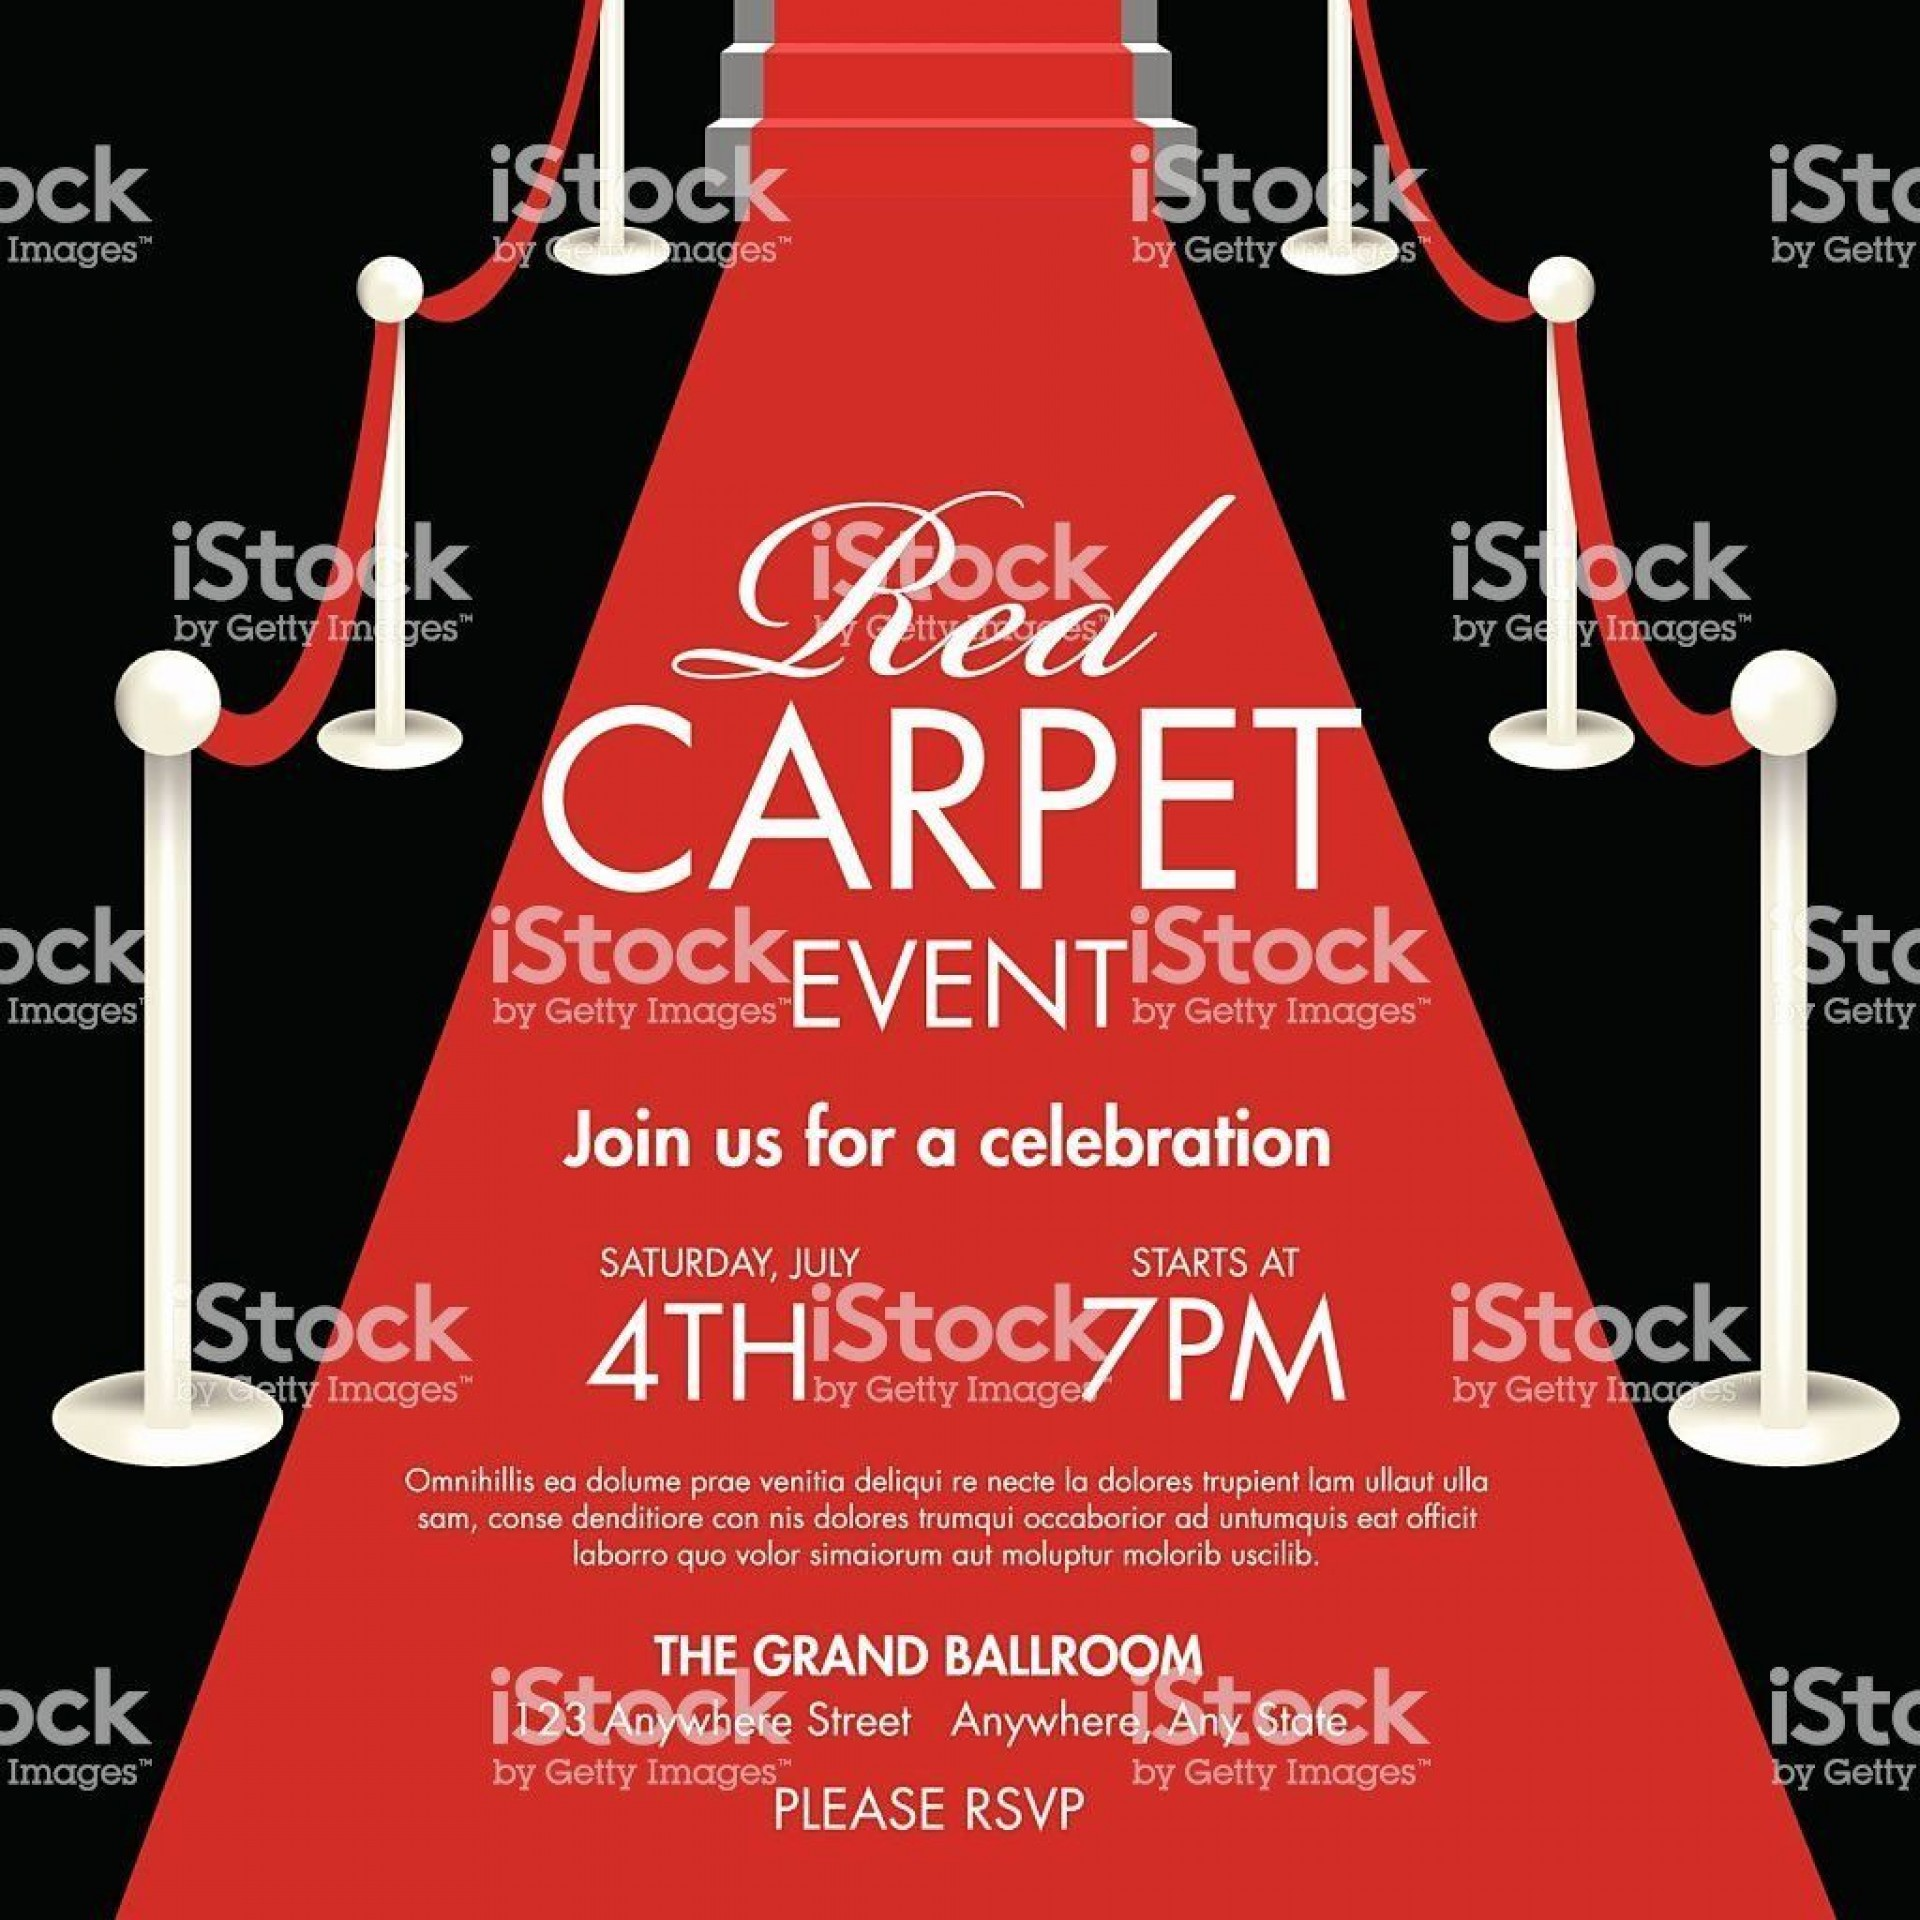 004 Unusual Red Carpet Invitation Template Free High Resolution  Download1920